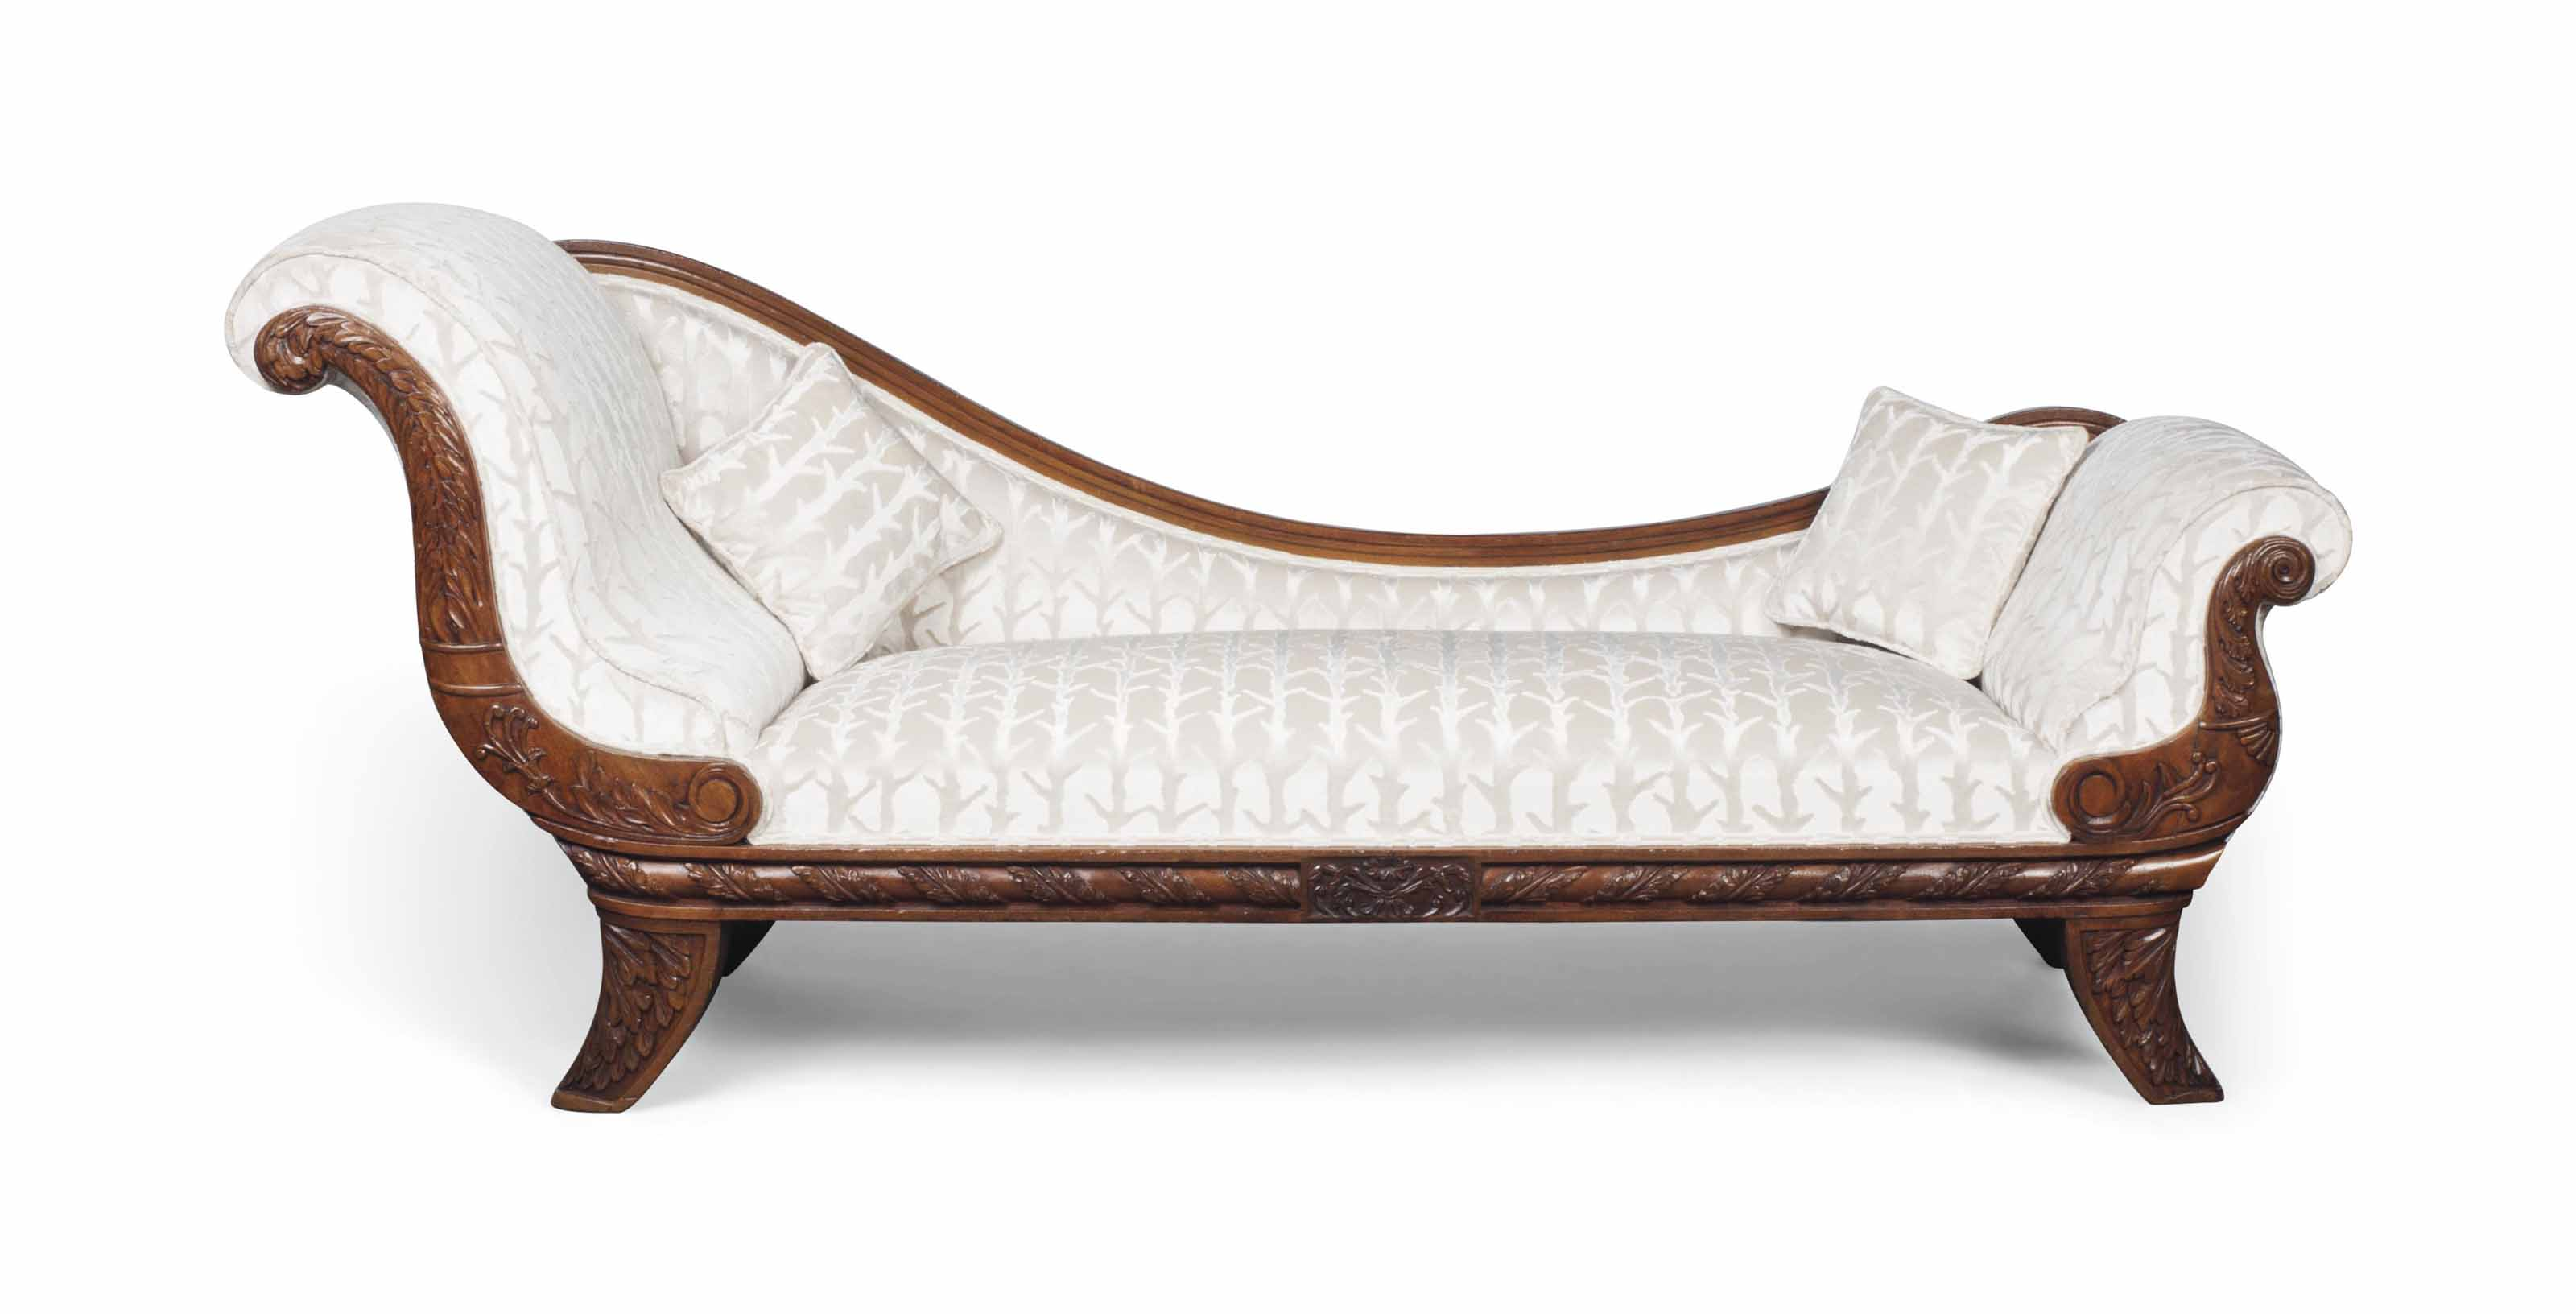 AN ANGLO-INDIAN TEAK DAYBED